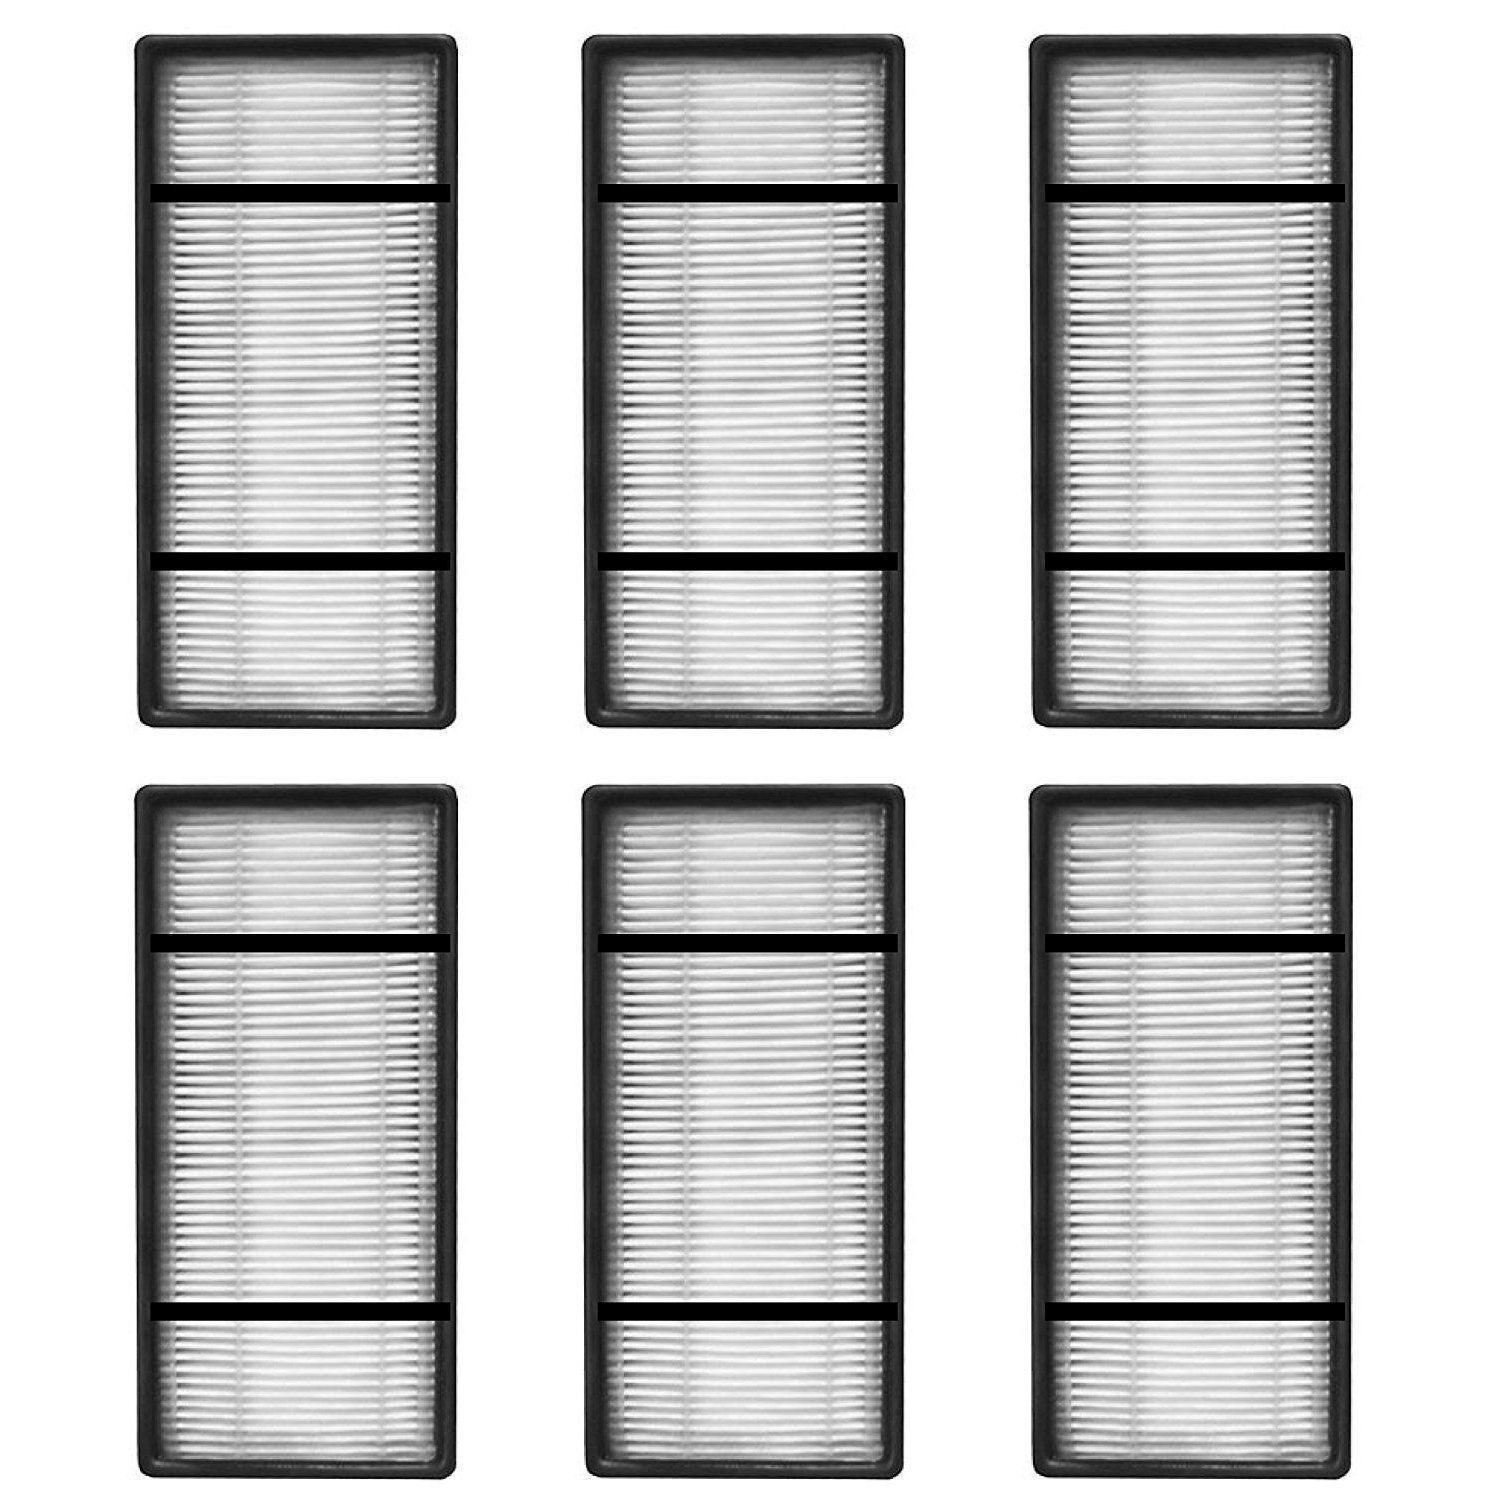 6 HEPA Filter for Replacement Honeywell HRF-H2 Air Purifier HHT055 HPA050 HPA1506 HEPA Filter for Replacement Honeywell HRF-H2 Air Purifier HHT055 HPA050 HPA150